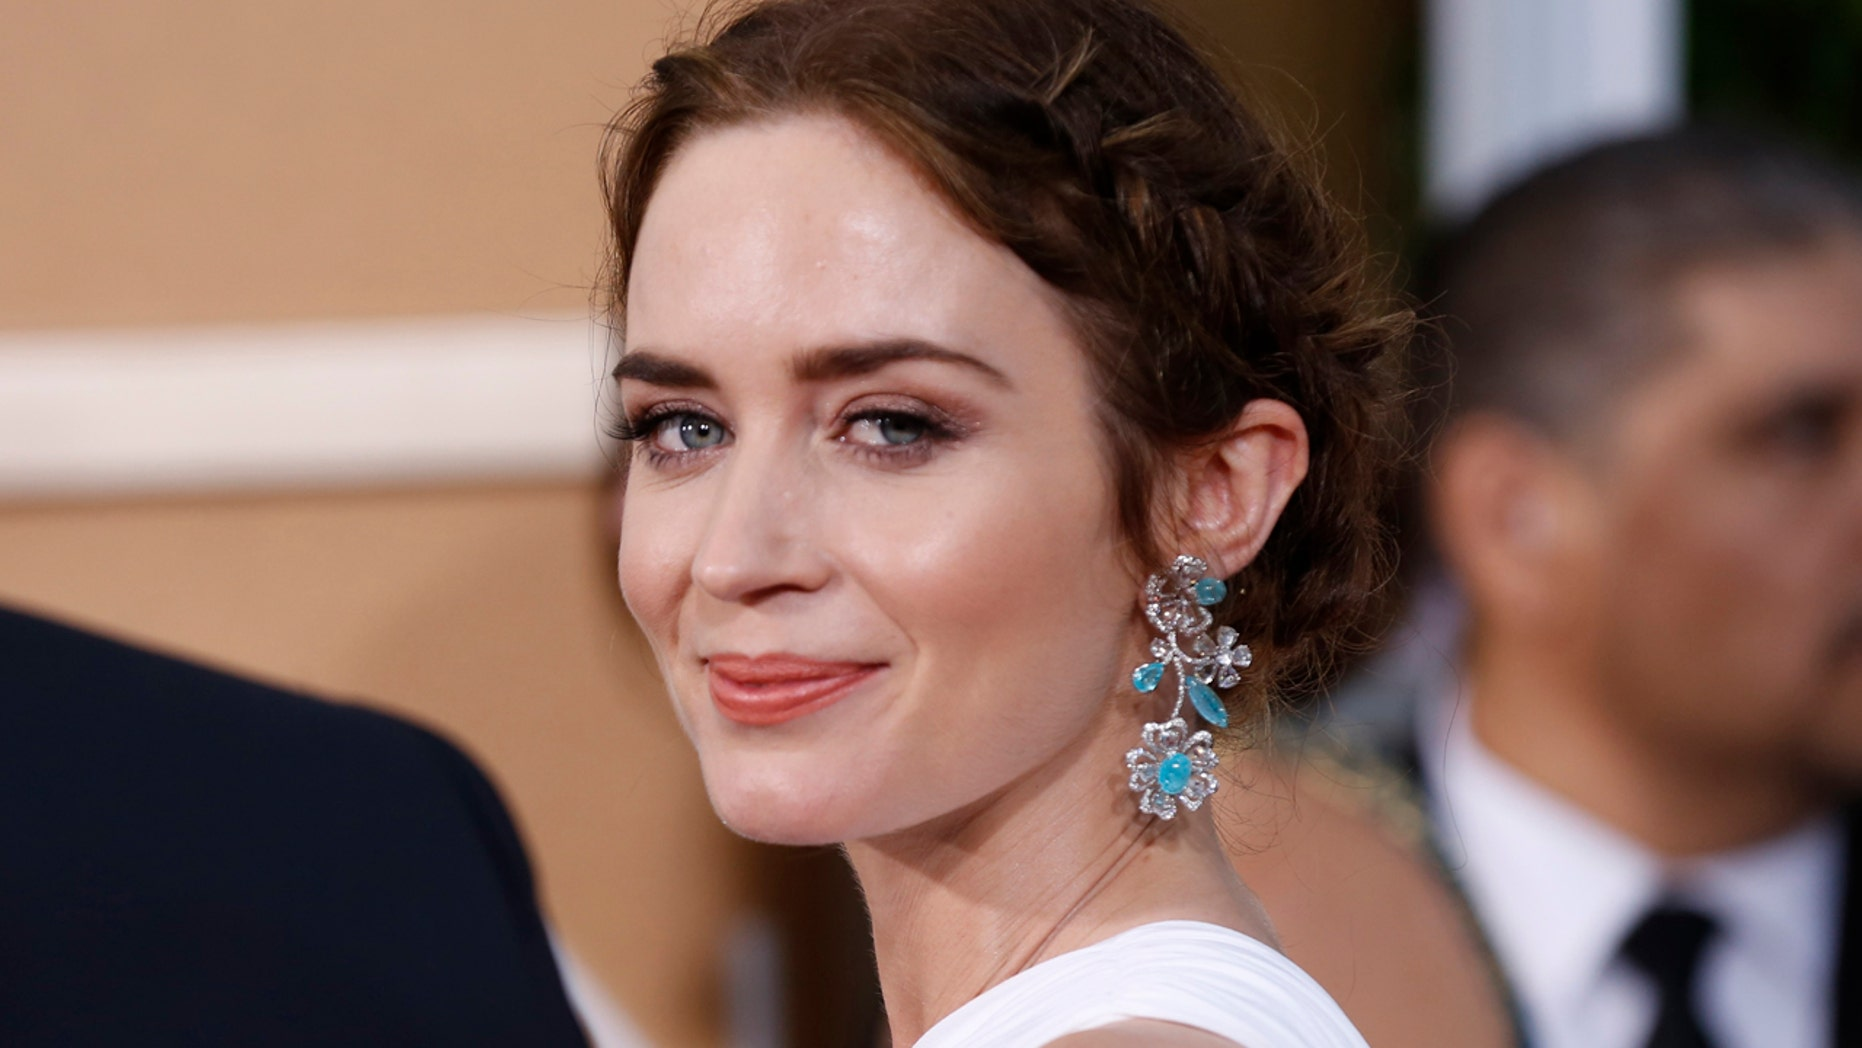 Actress Emily Blunt arrives at the 72nd Golden Globe Awards in Beverly Hills, California January 11, 2015.